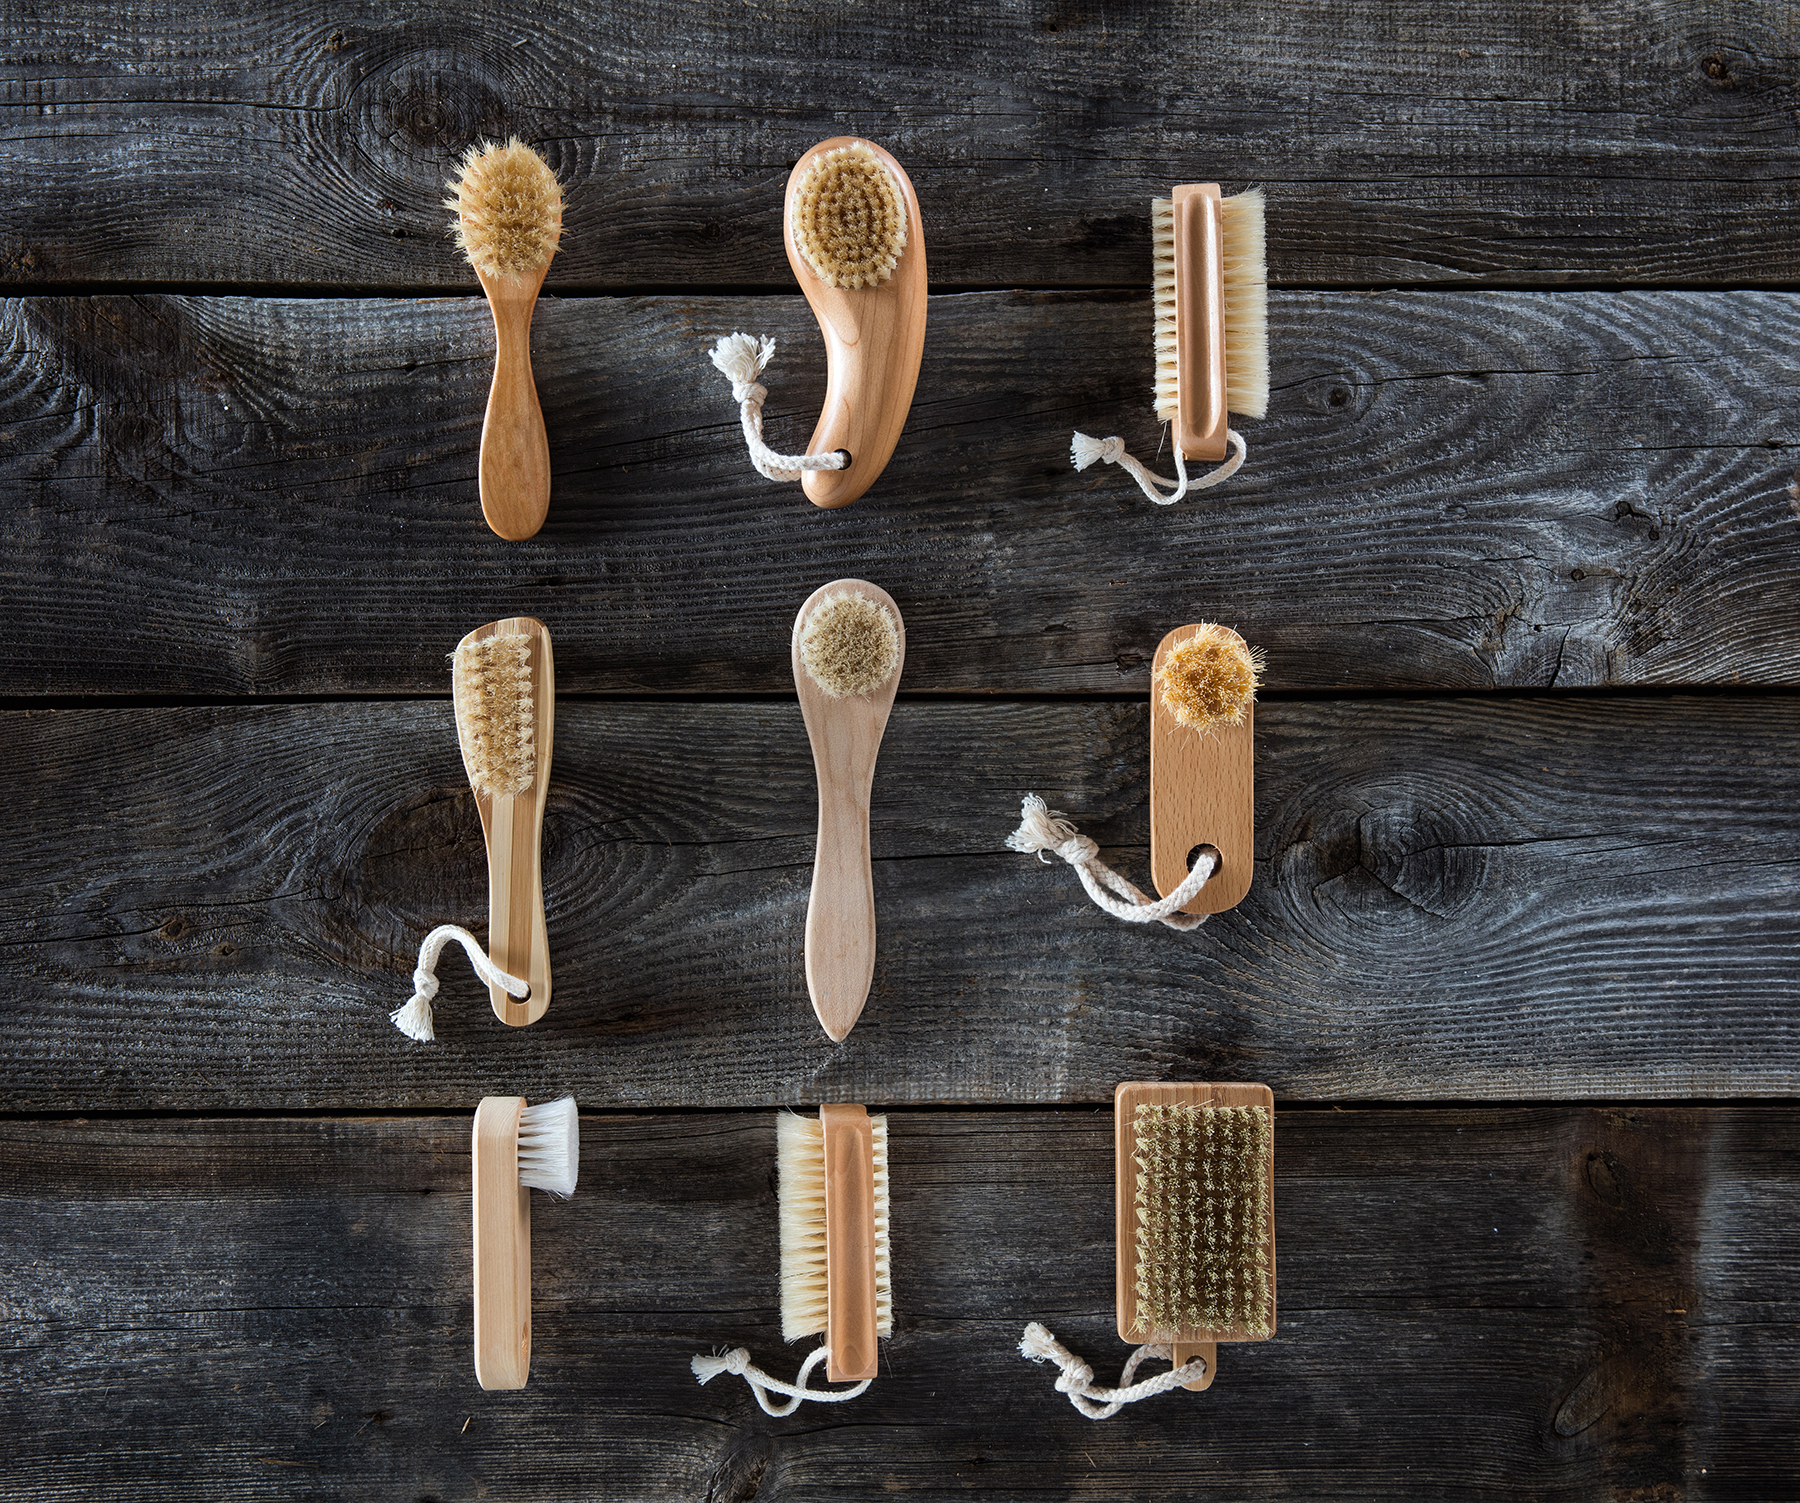 Collection of body brushes on wood surface